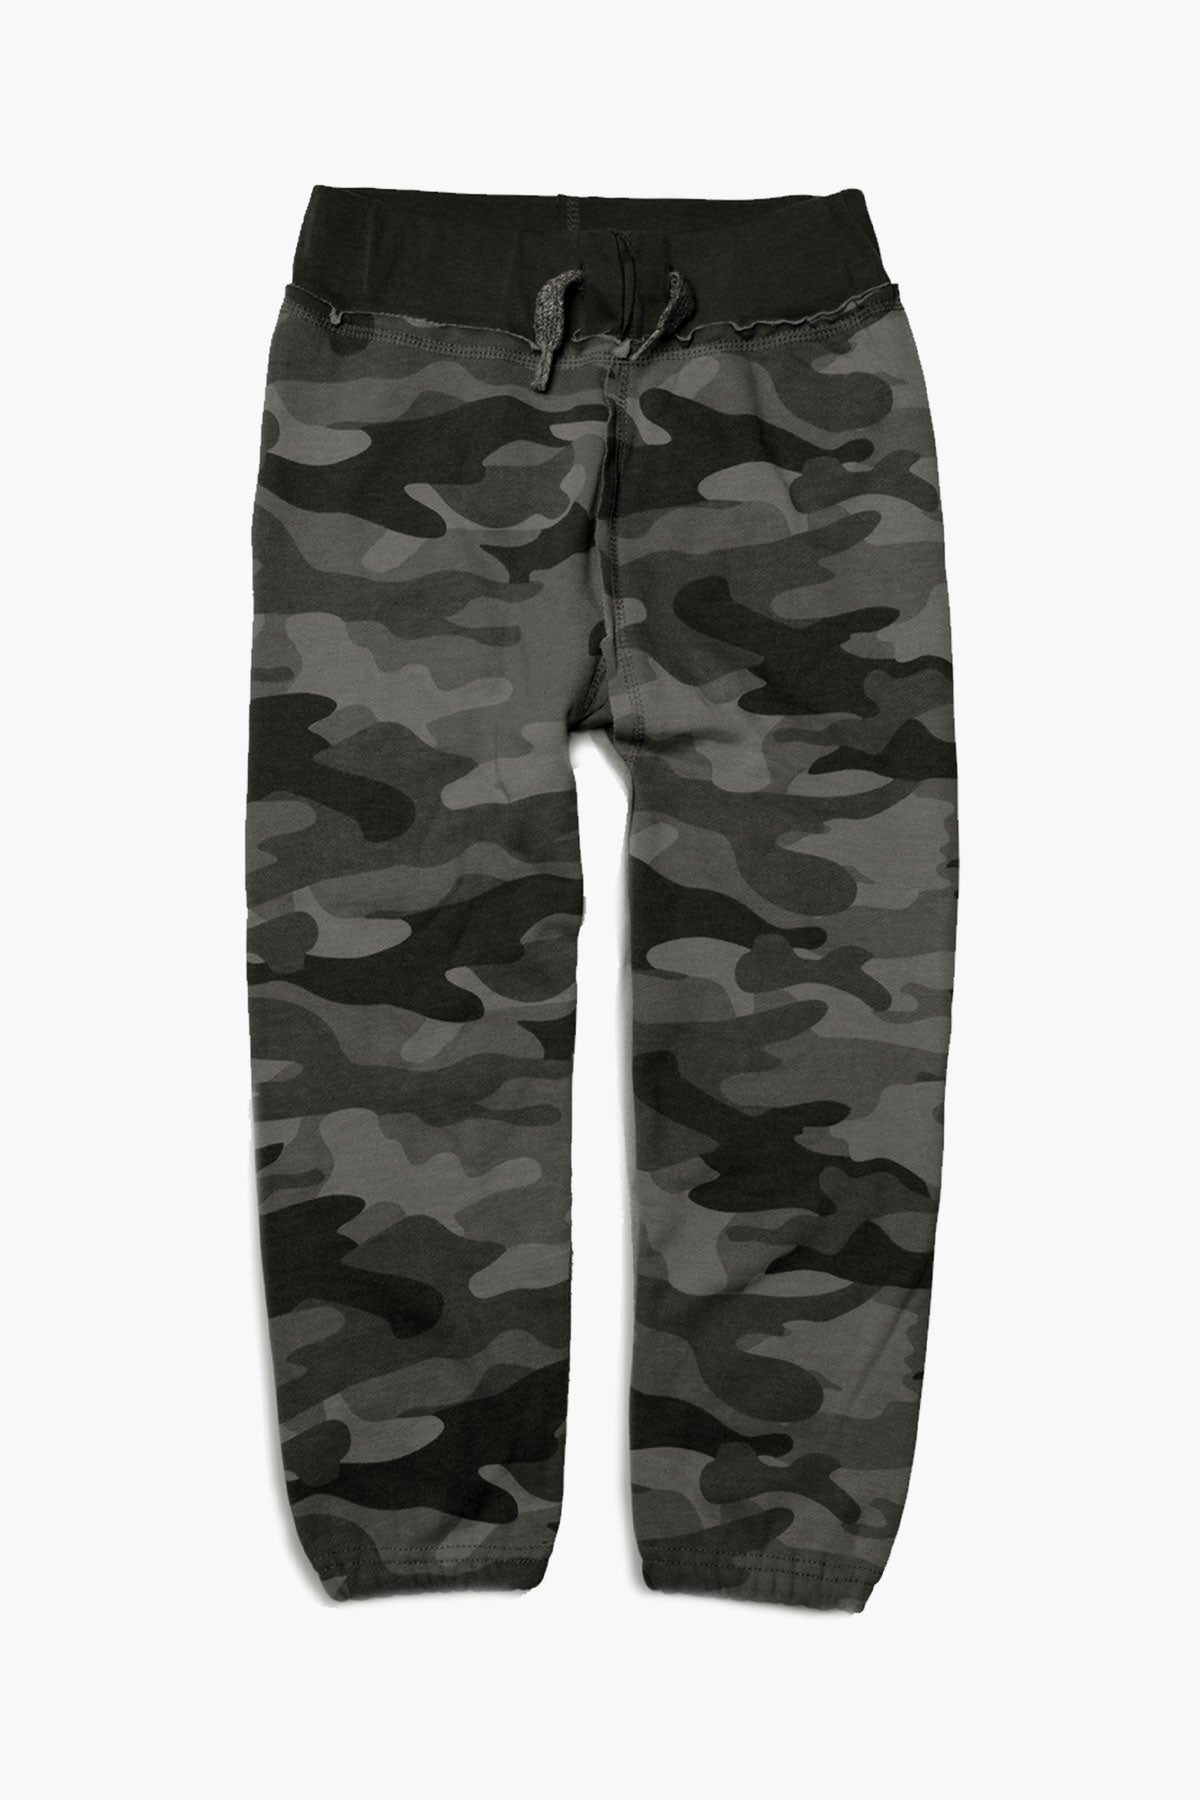 Appaman Camo Gym Sweatpants